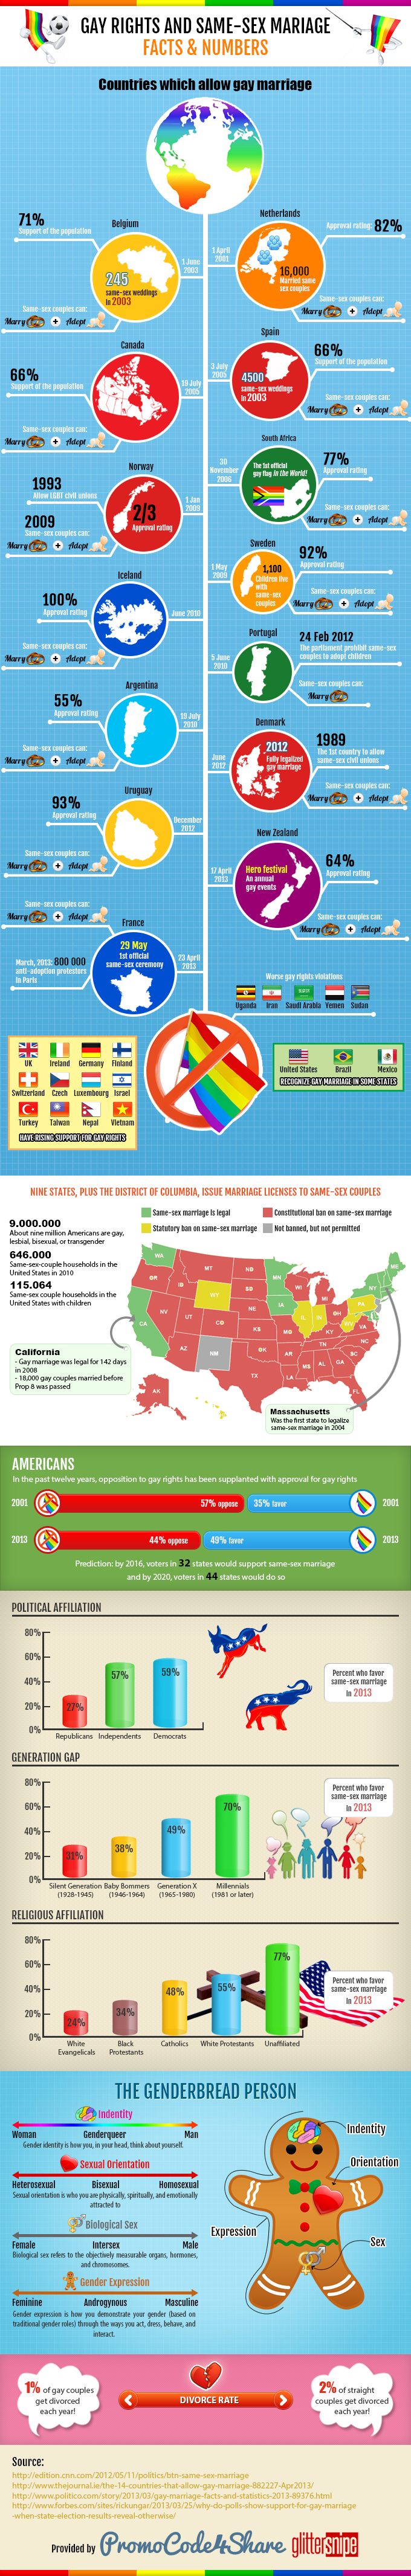 Same sex marriage facts in california